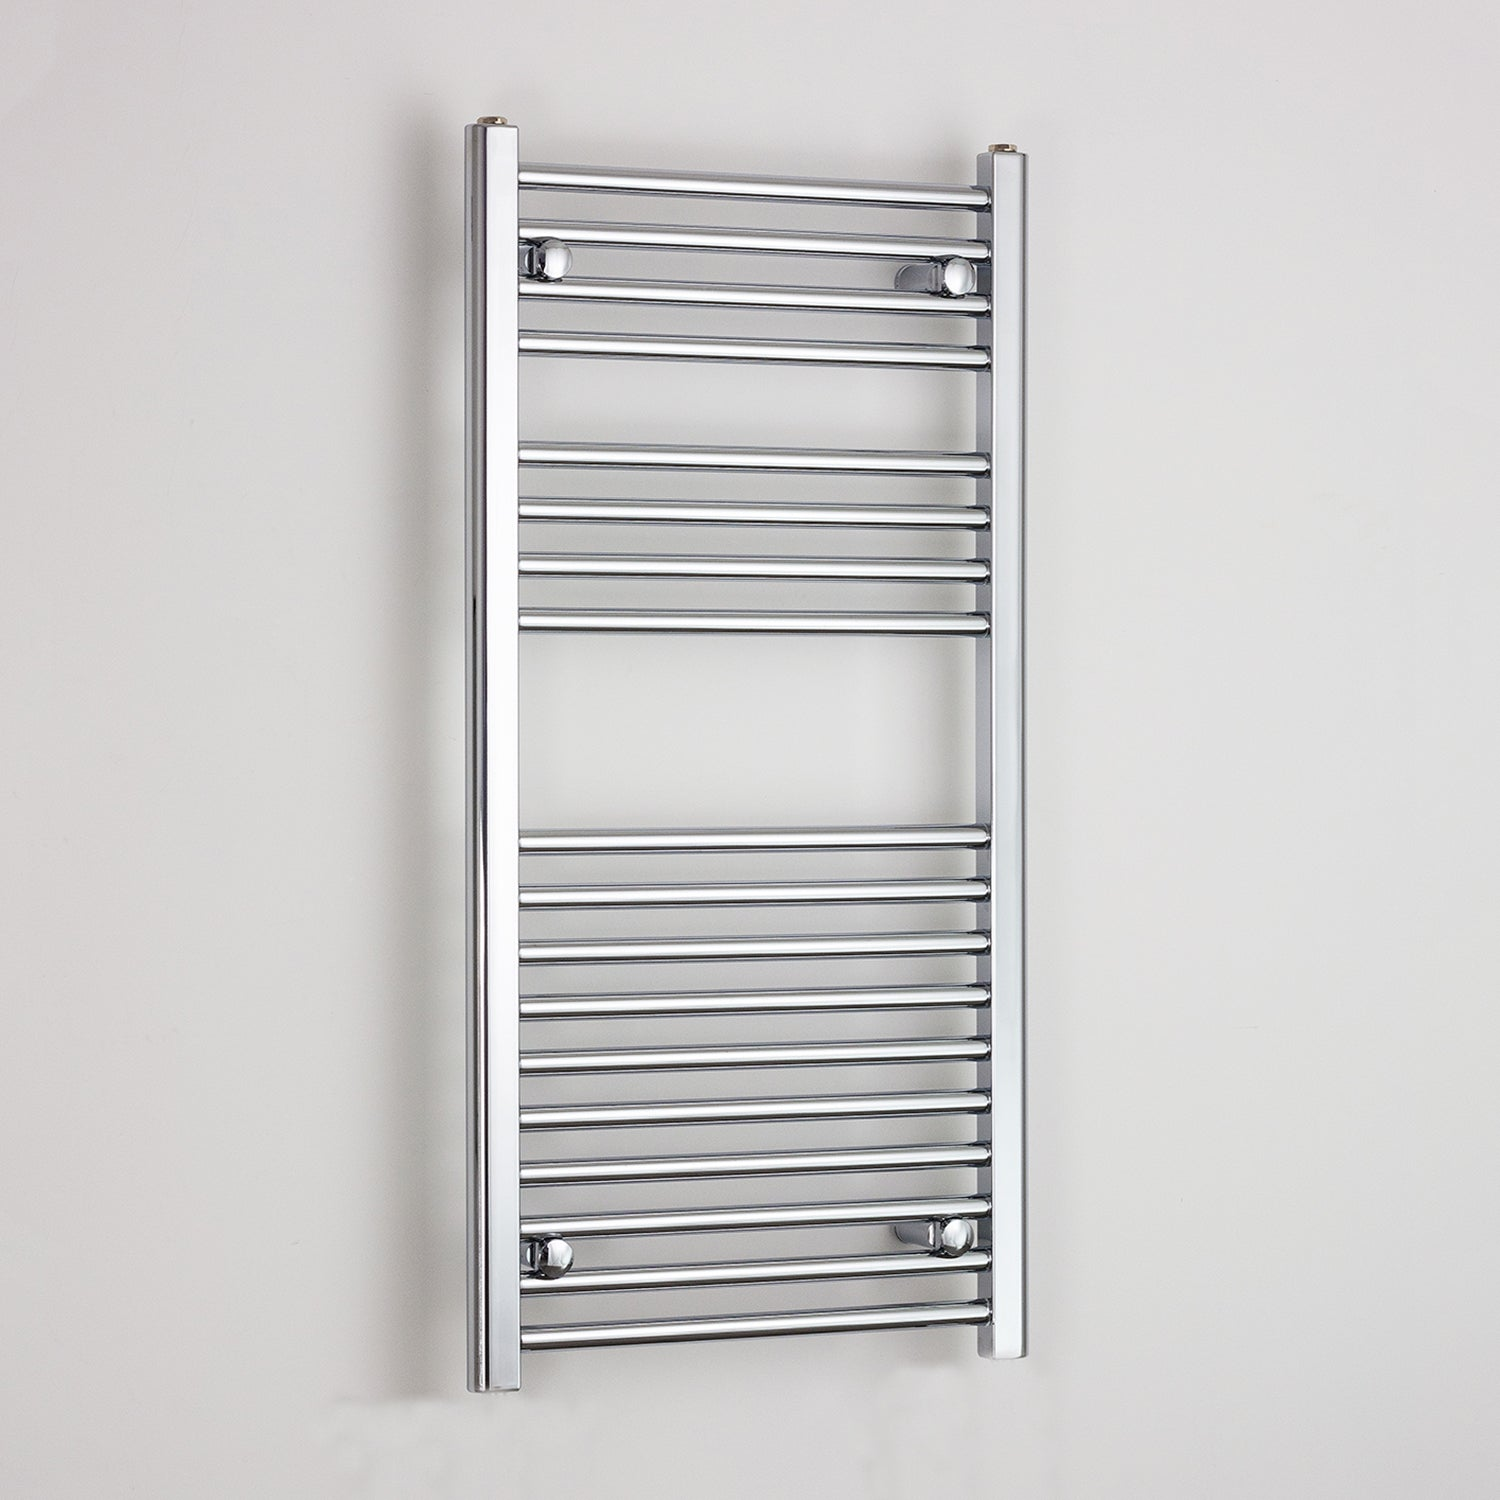 600mm Wide 1000mm High Curved Chrome Heated Towel Rail Radiator HTR,Towel Rail Only